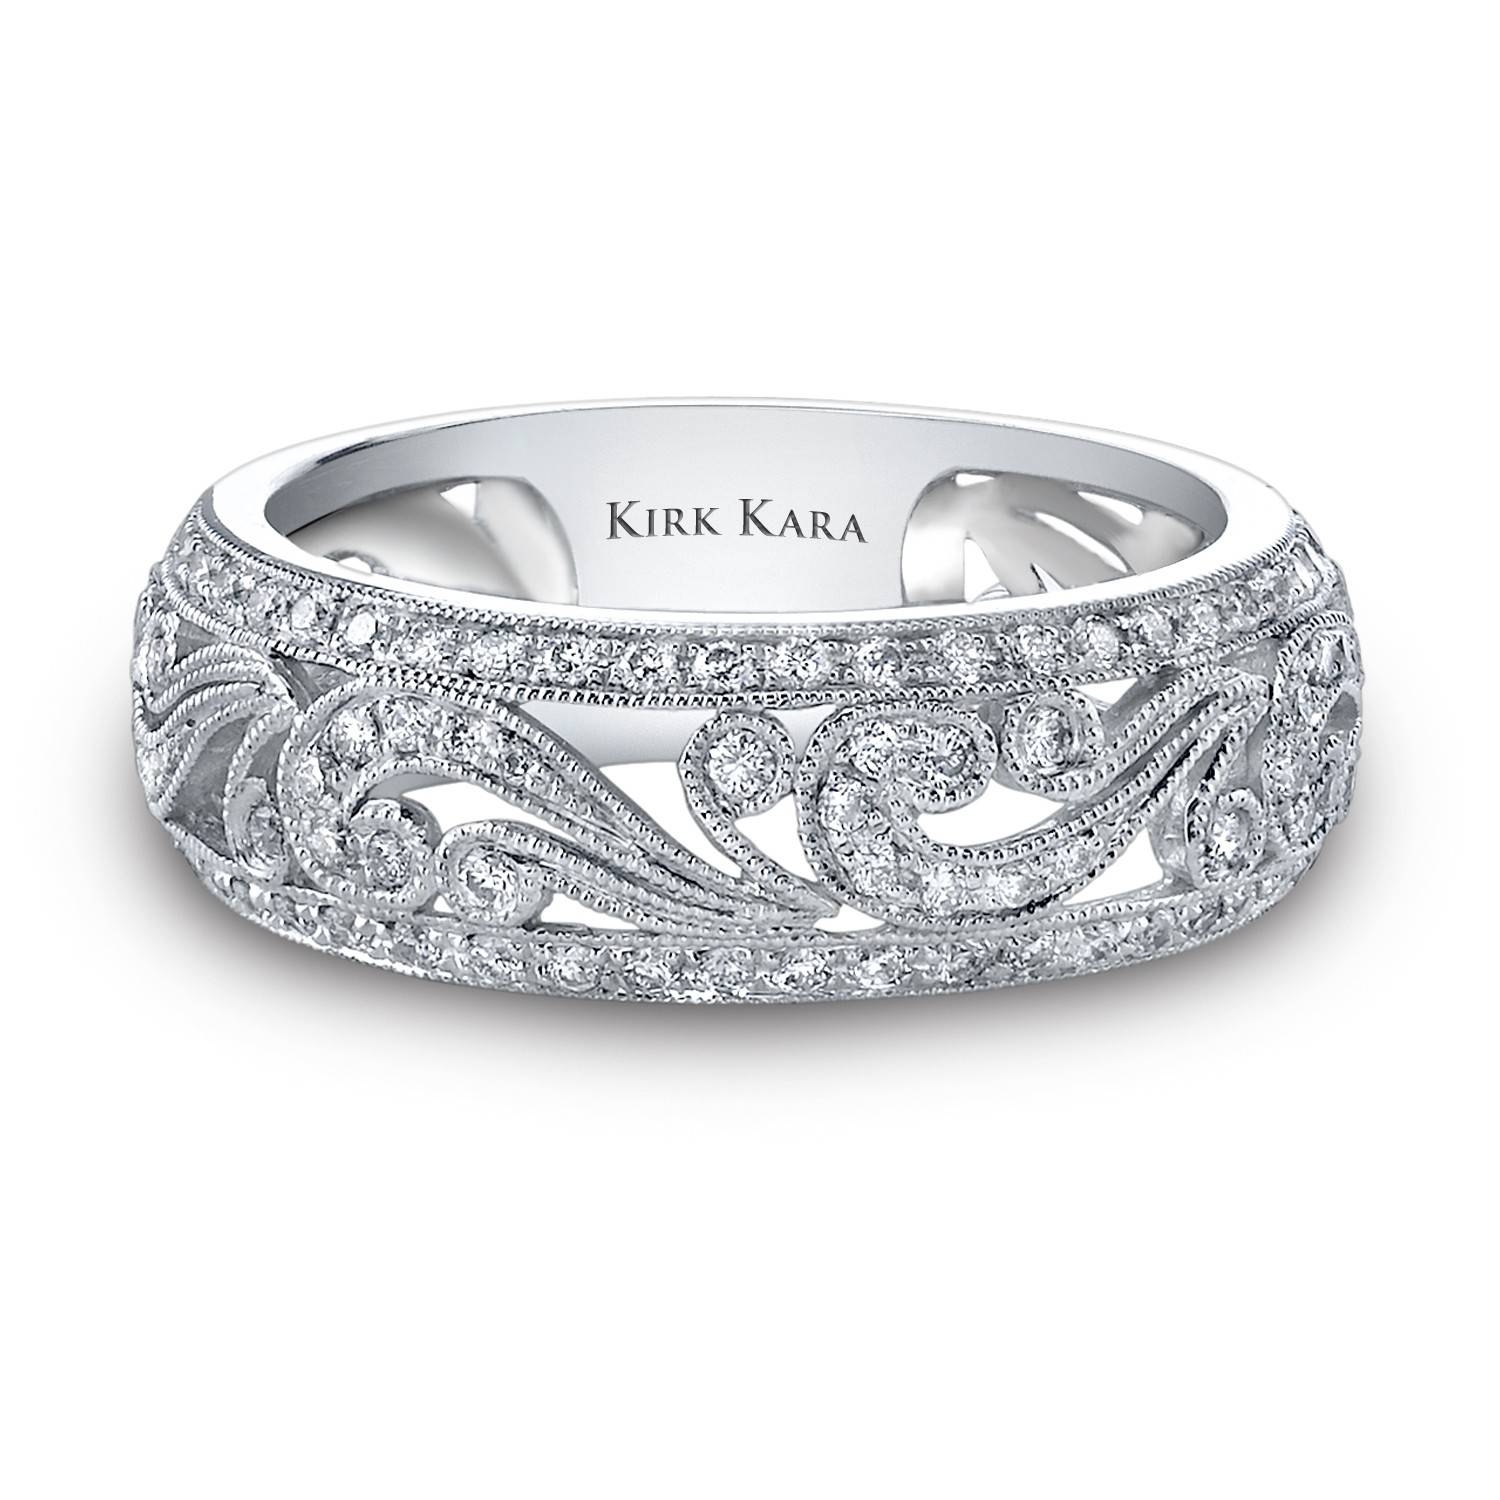 Engraved Wedding Rings For Women | Lake Side Corrals Inside Unique Womens Wedding Rings (View 4 of 15)